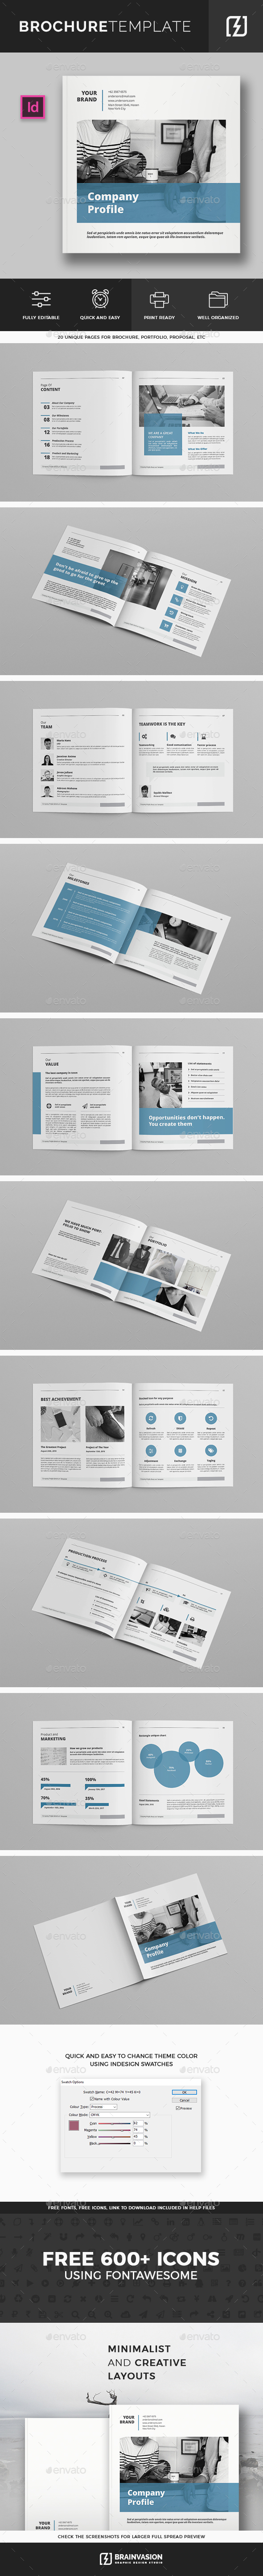 Square Company Profile Brochure Template By Brainvasion GraphicRiver - Company profile brochure template